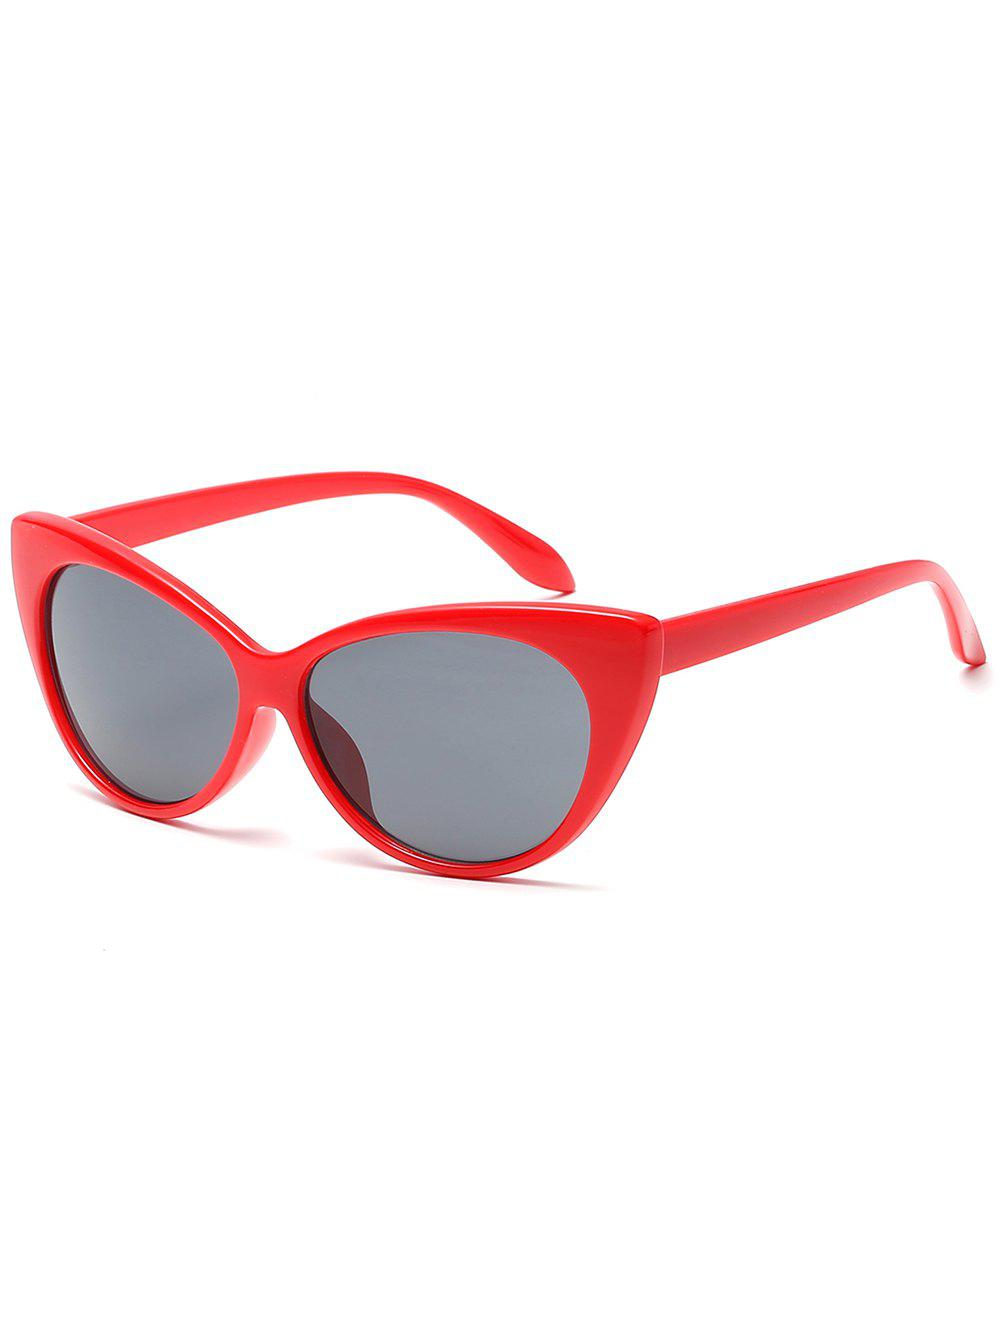 Outfits Lightweight Flat Lens Full Frame Catty Sunglasses